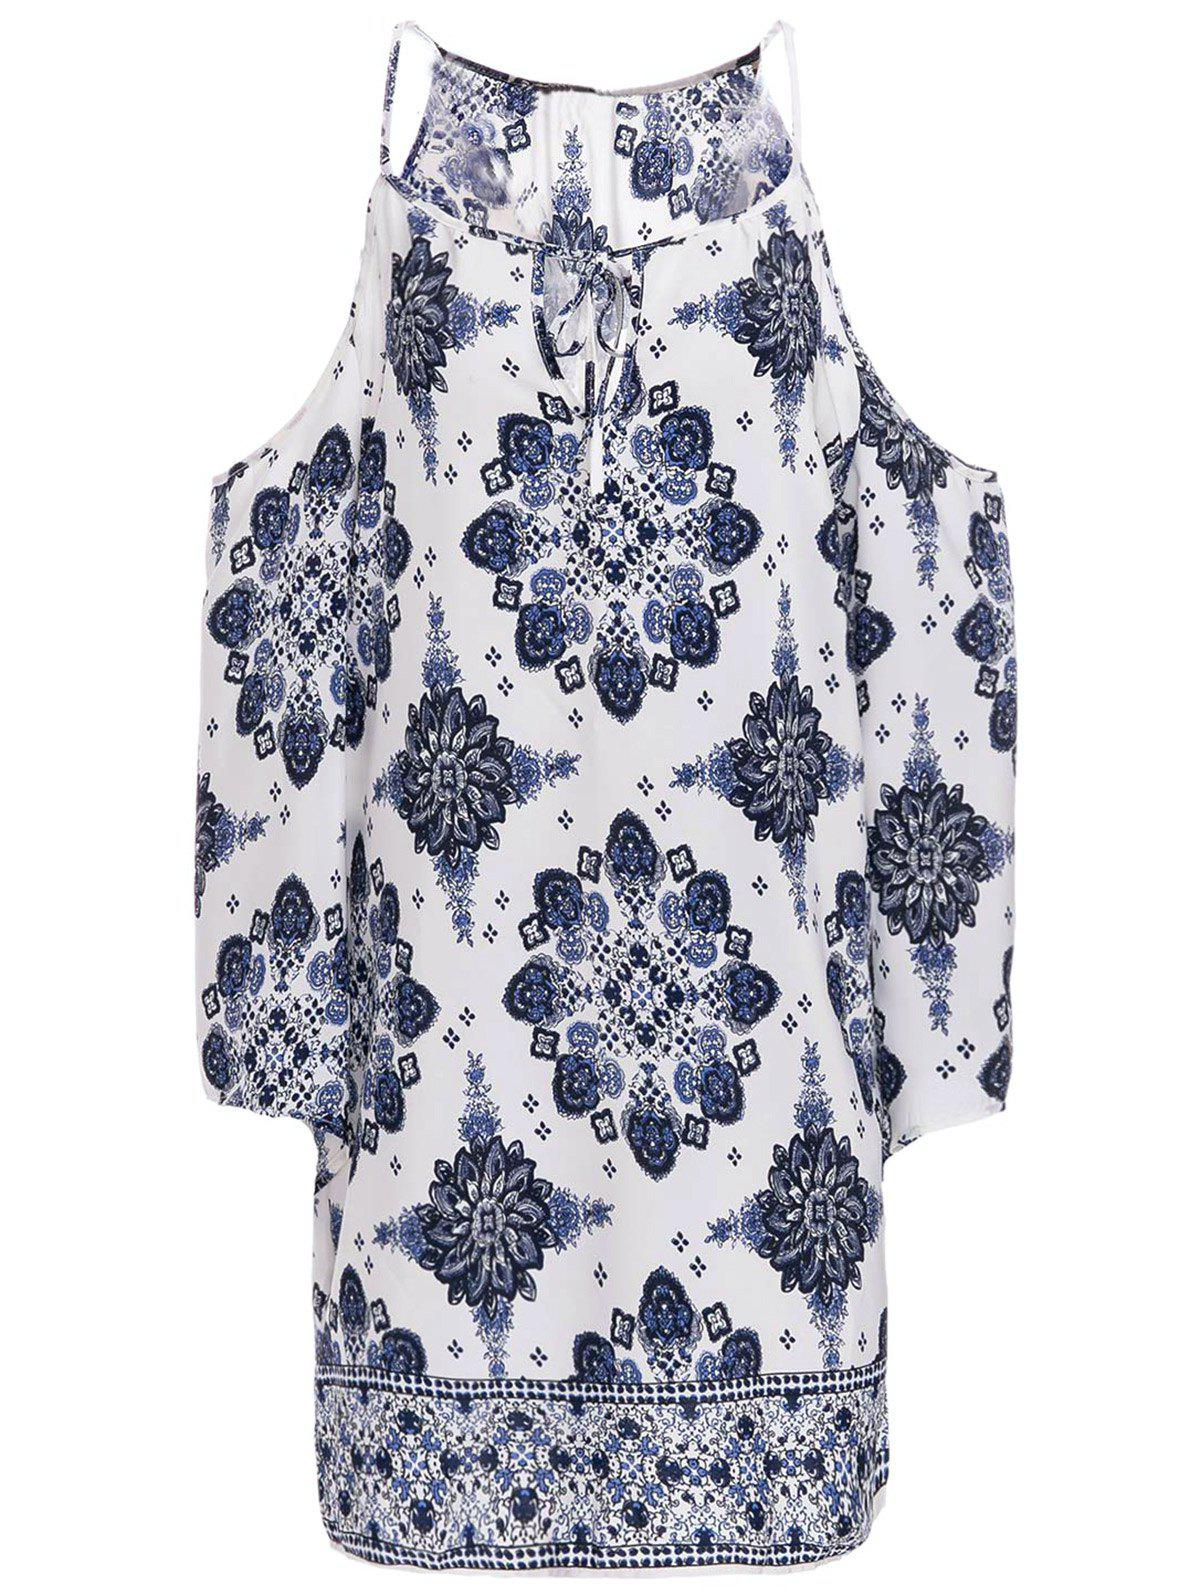 Trendy Women's V-Neck 3/4 Sleeve Cut Out Printed Dress - BLUE/WHITE M